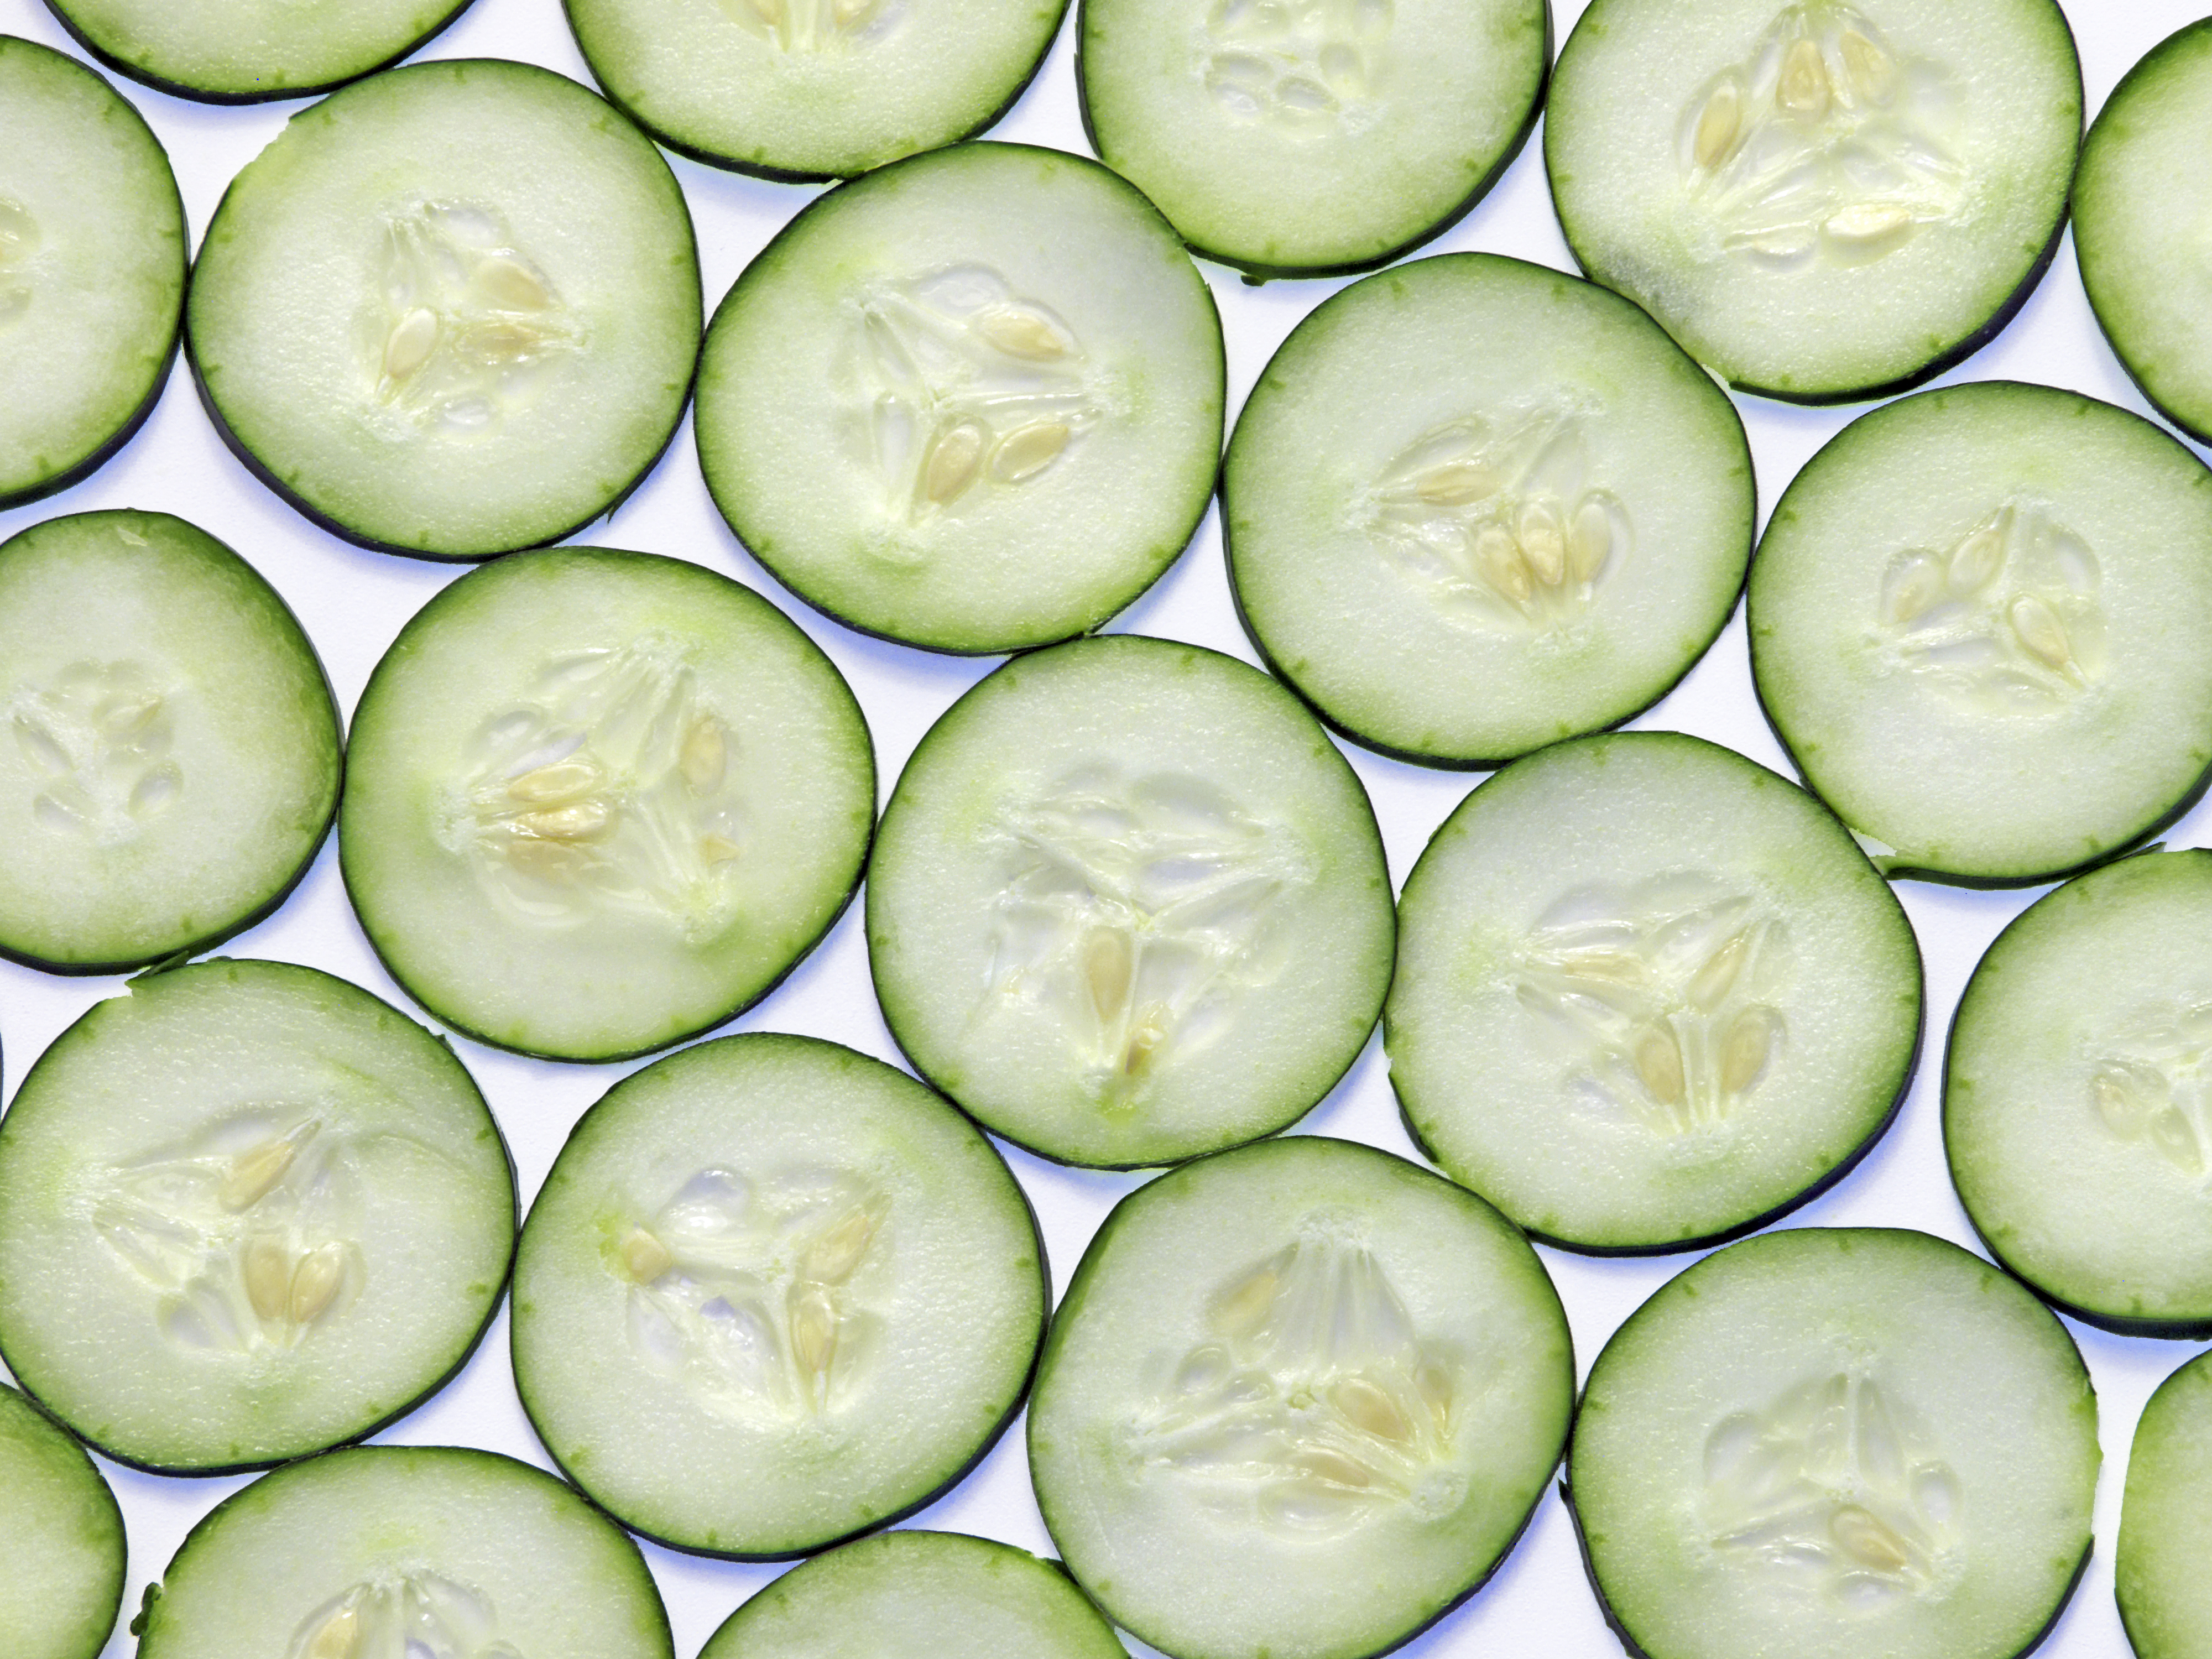 Cucumbers, Cookie Dough, and 3 Other Foods to Avoid This